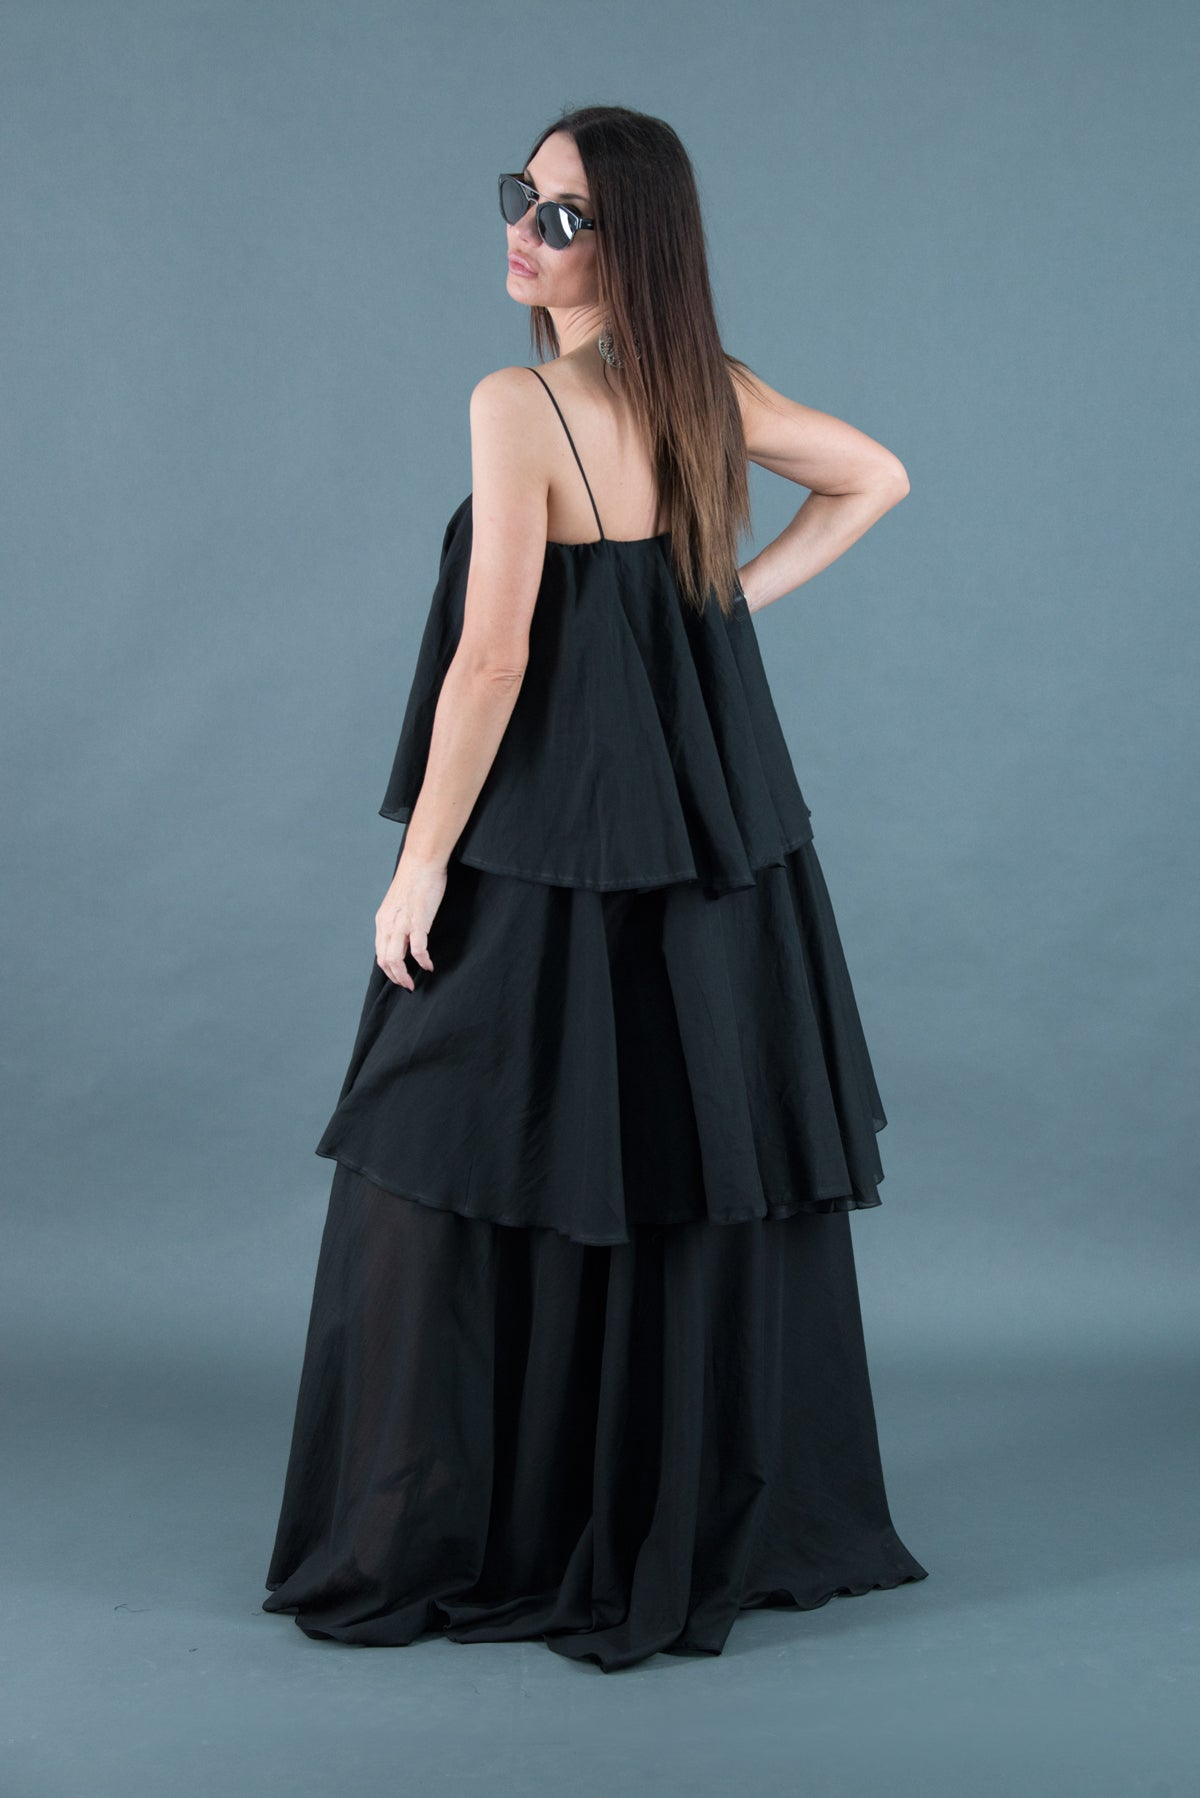 Black Cotton Maxi Dress, Summer Flounces Dress, Cotton Dress